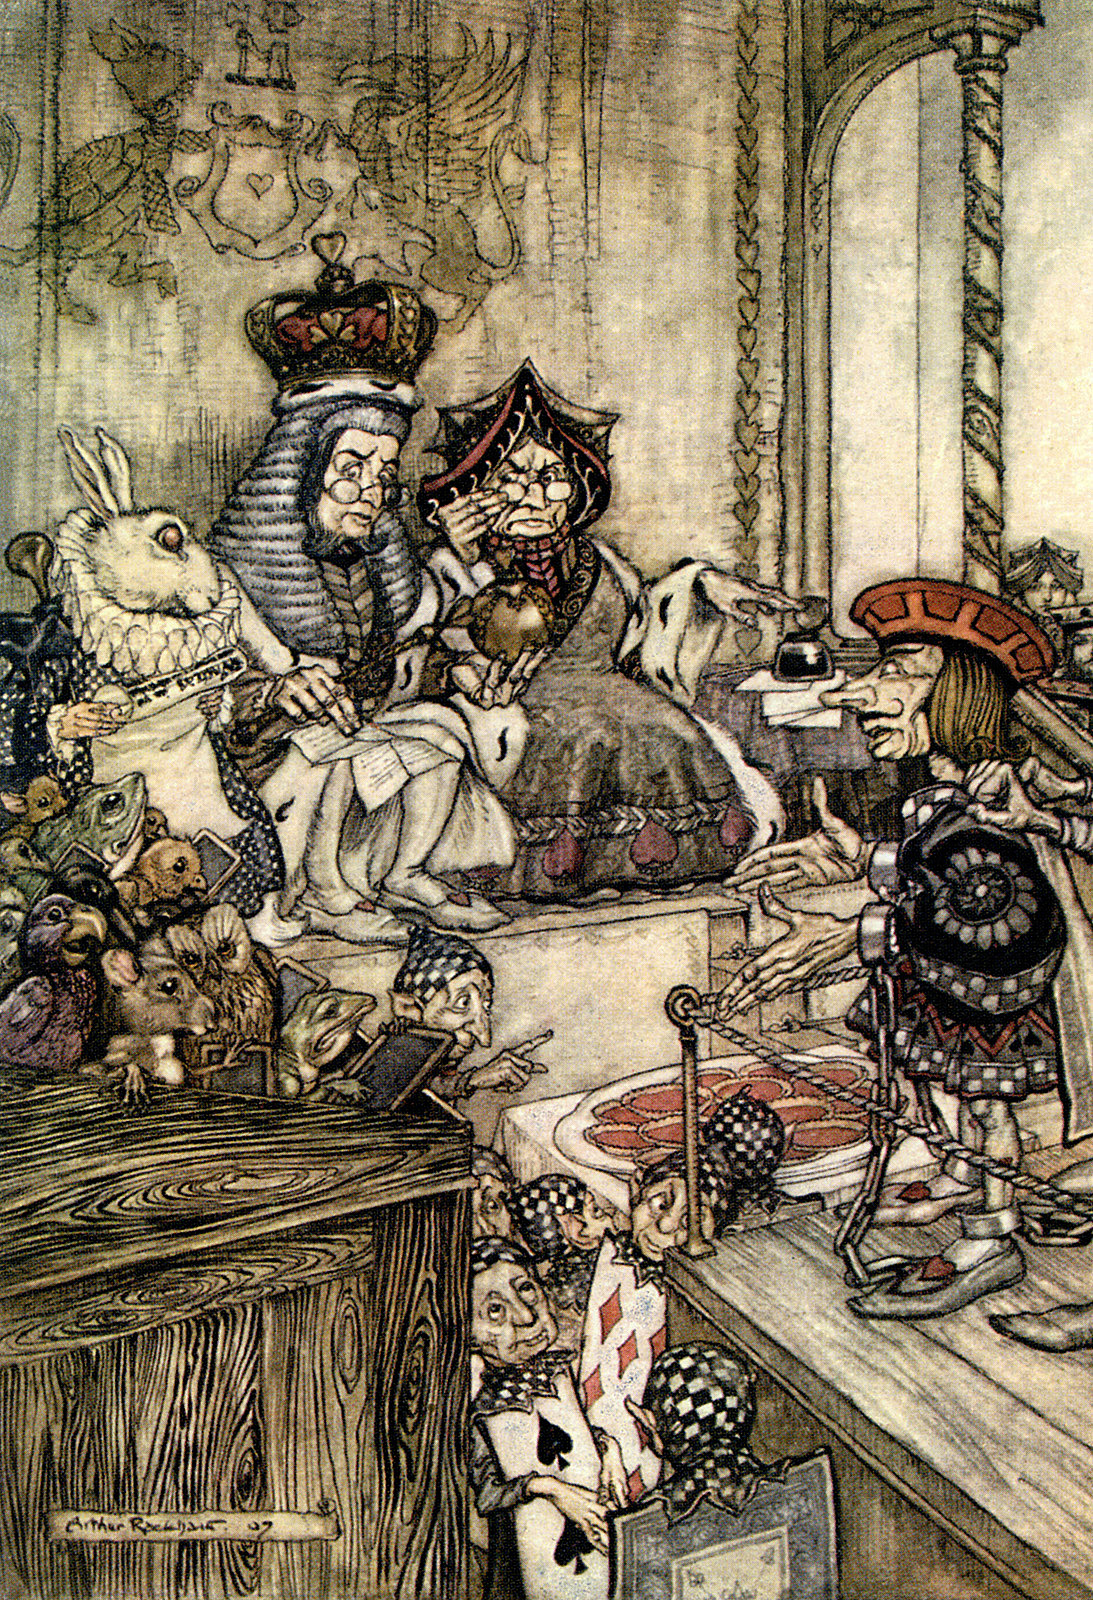 Who Stole the Tarts? from Alice in Wonderland, Illustration by Arthur Rackham